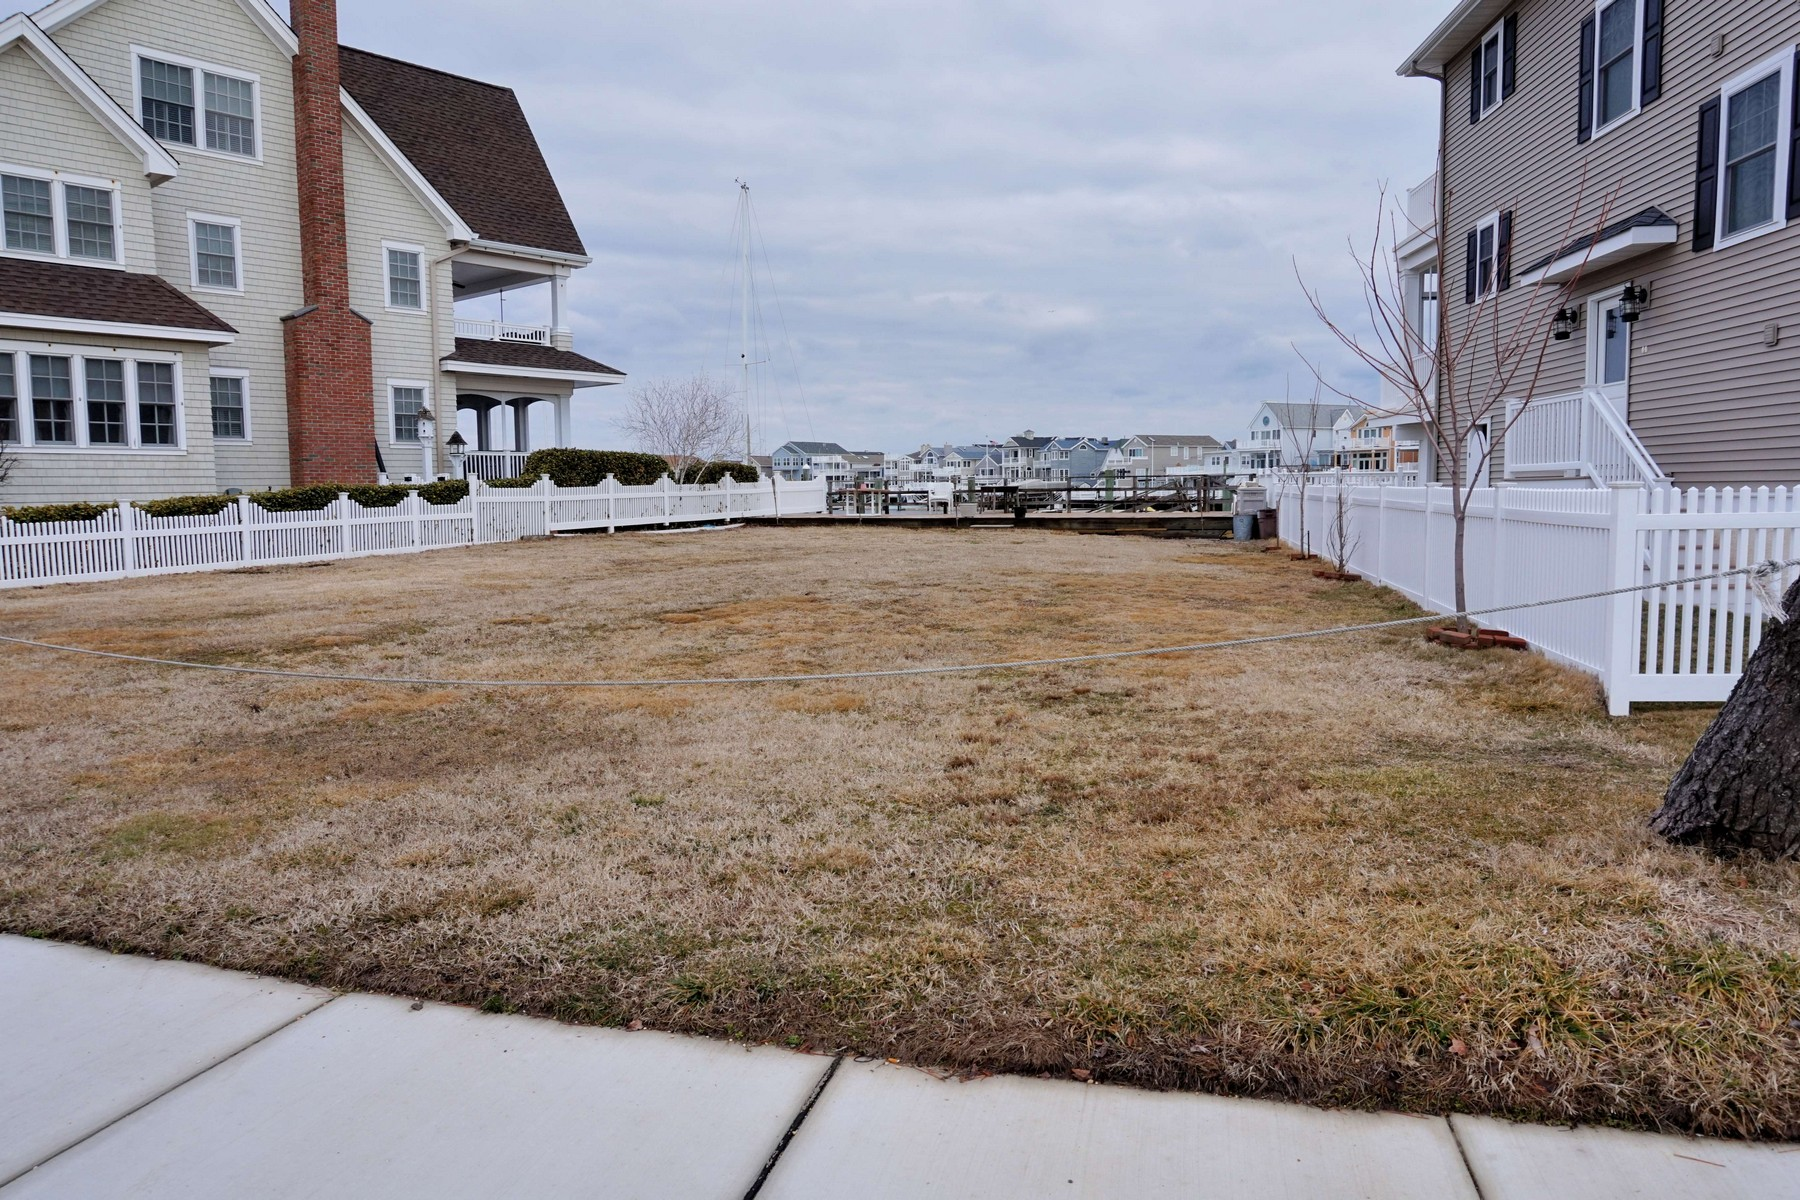 Terreno para Venda às Large Bay Front Lot 1 W 18th Steet Ocean City, Nova Jersey 08226 Estados Unidos